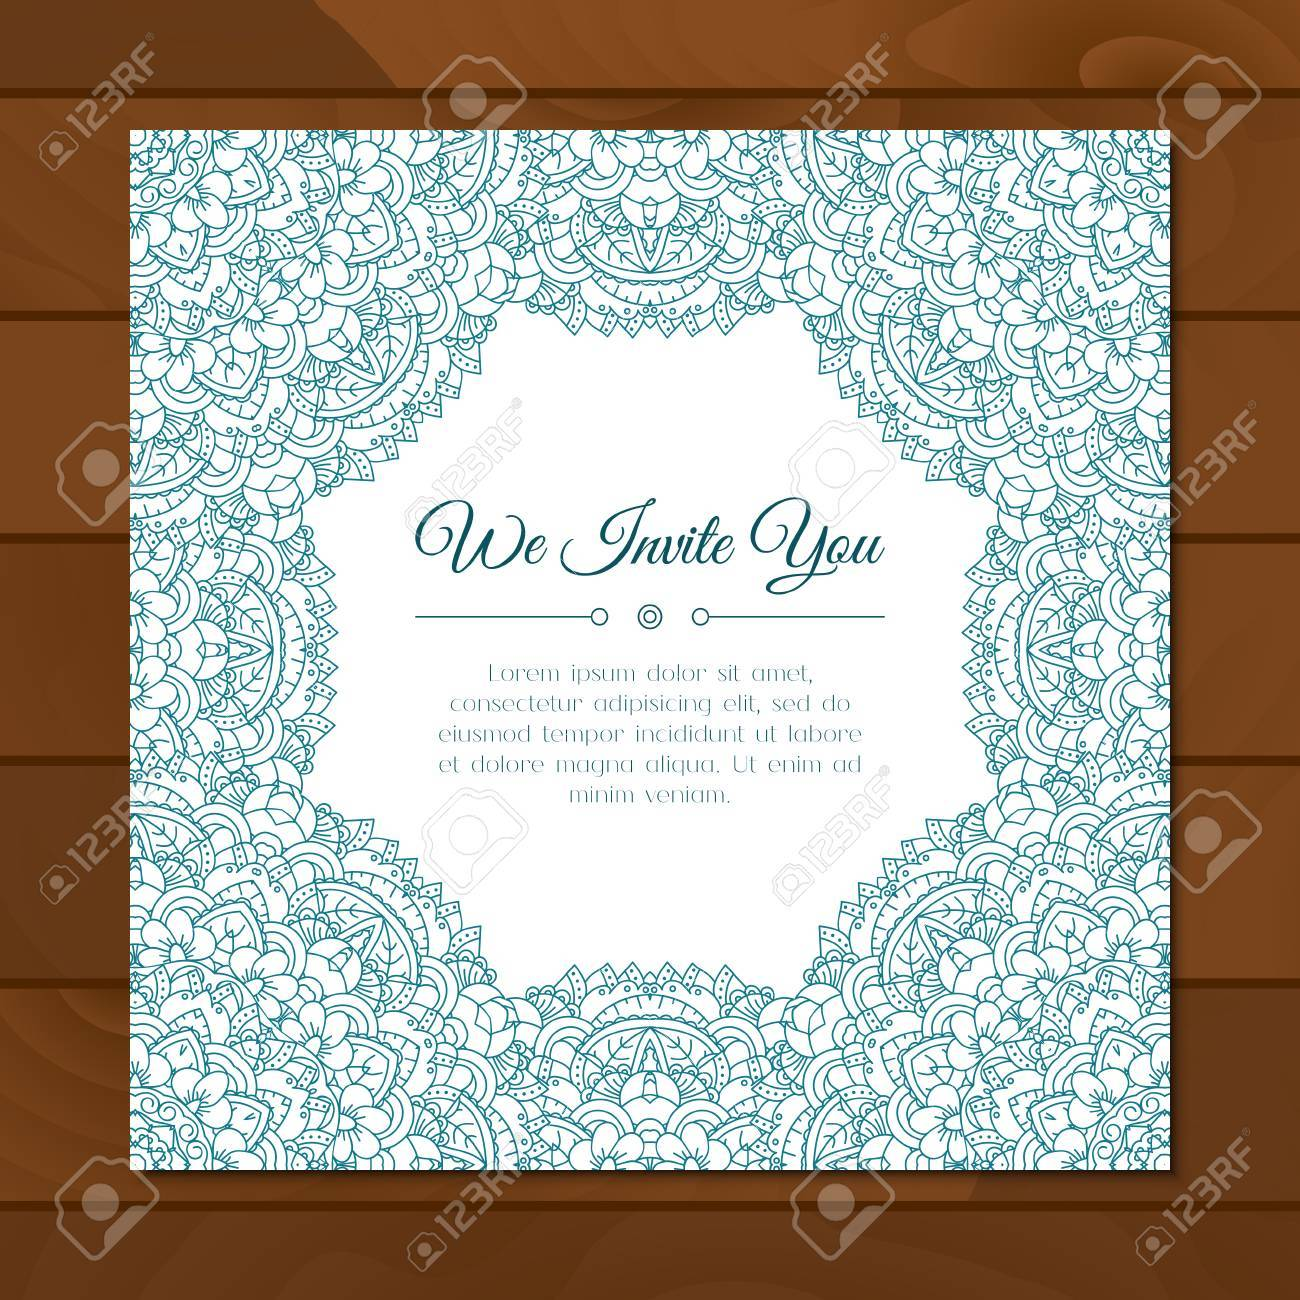 Greeting Card With Colorful Mandala Pattern East Indian Style Beautiful Background For